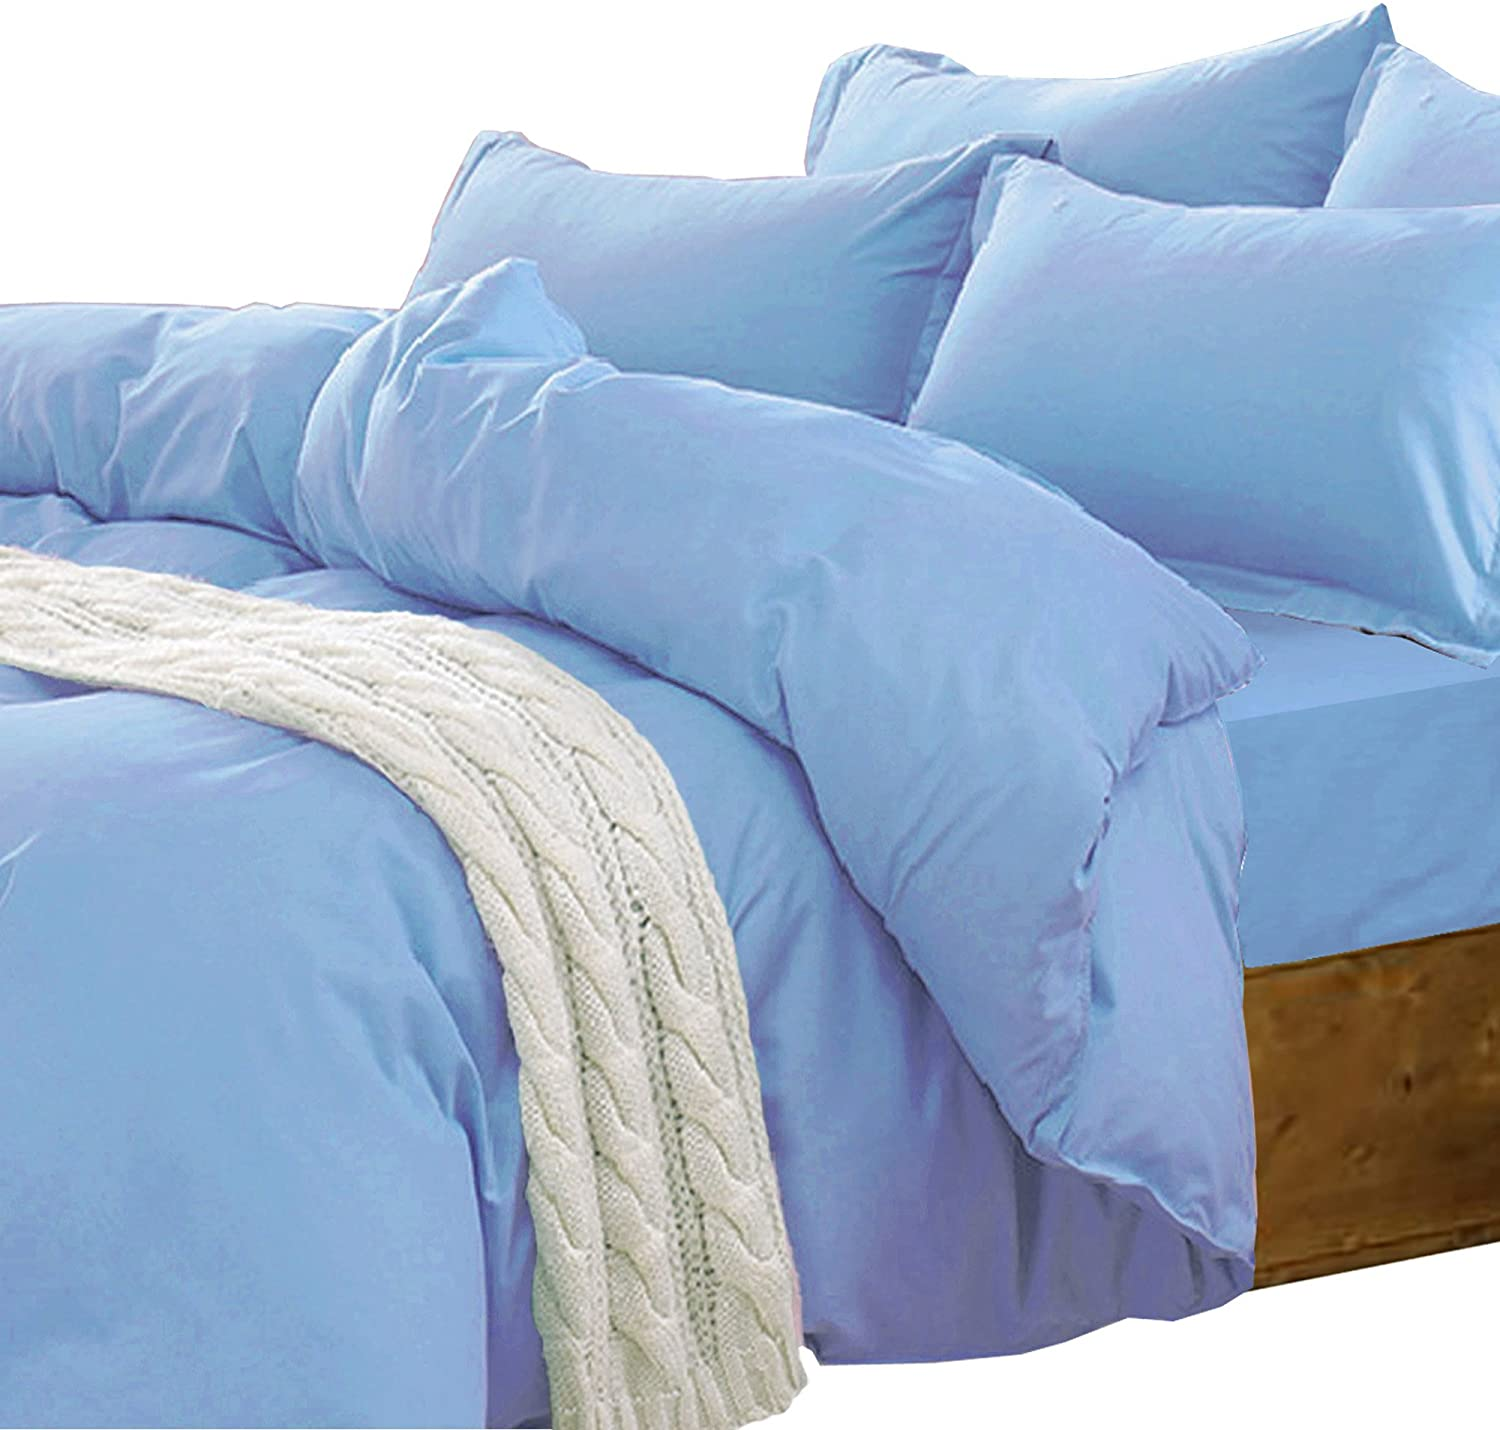 Essina Candies Collection Solid Color King Duvet Cover Set 3pc, Cotton 620 Thread Count, Blue